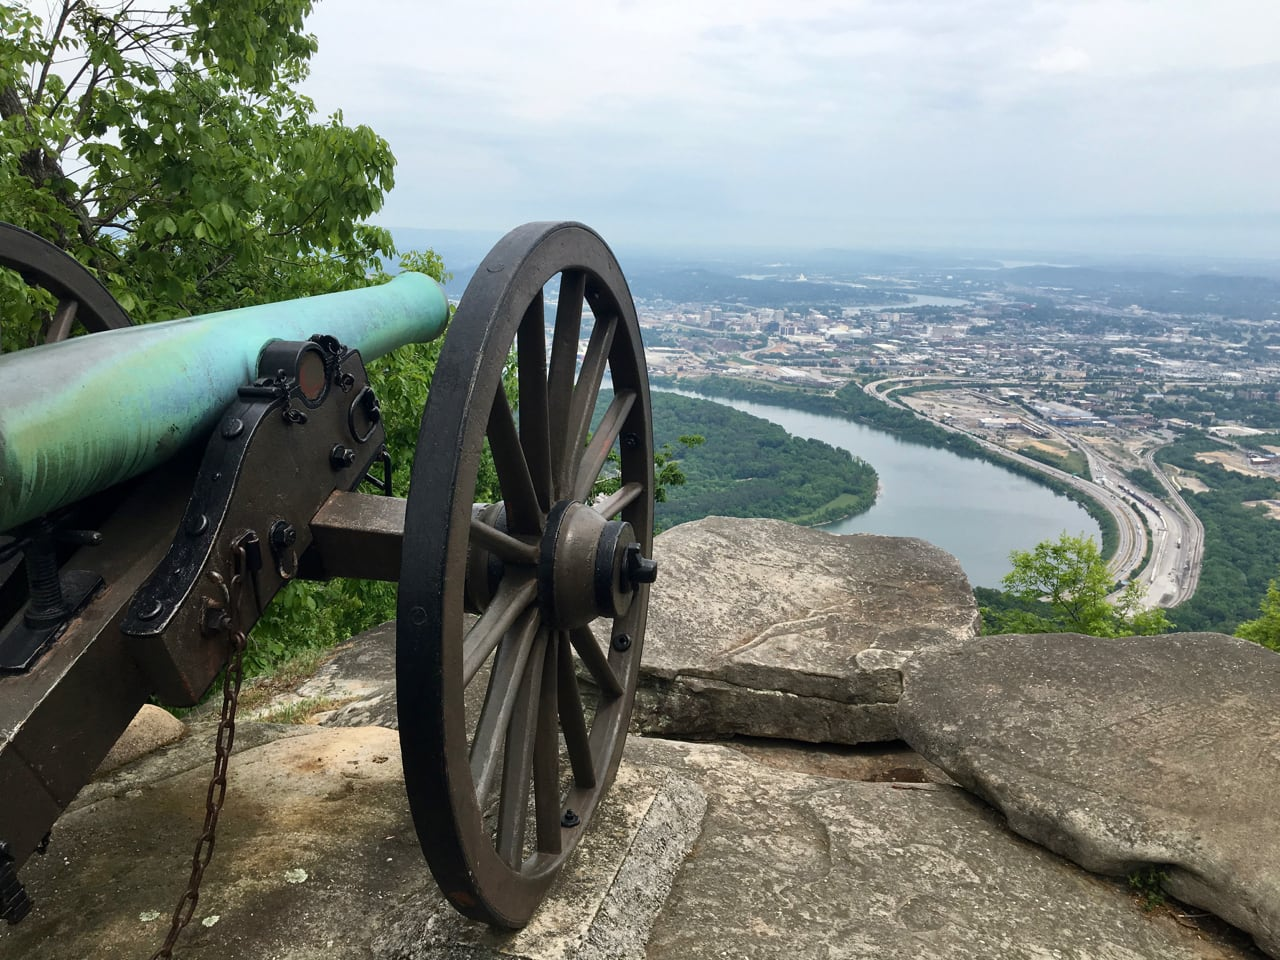 The view from Point Park on Lookout Mountain